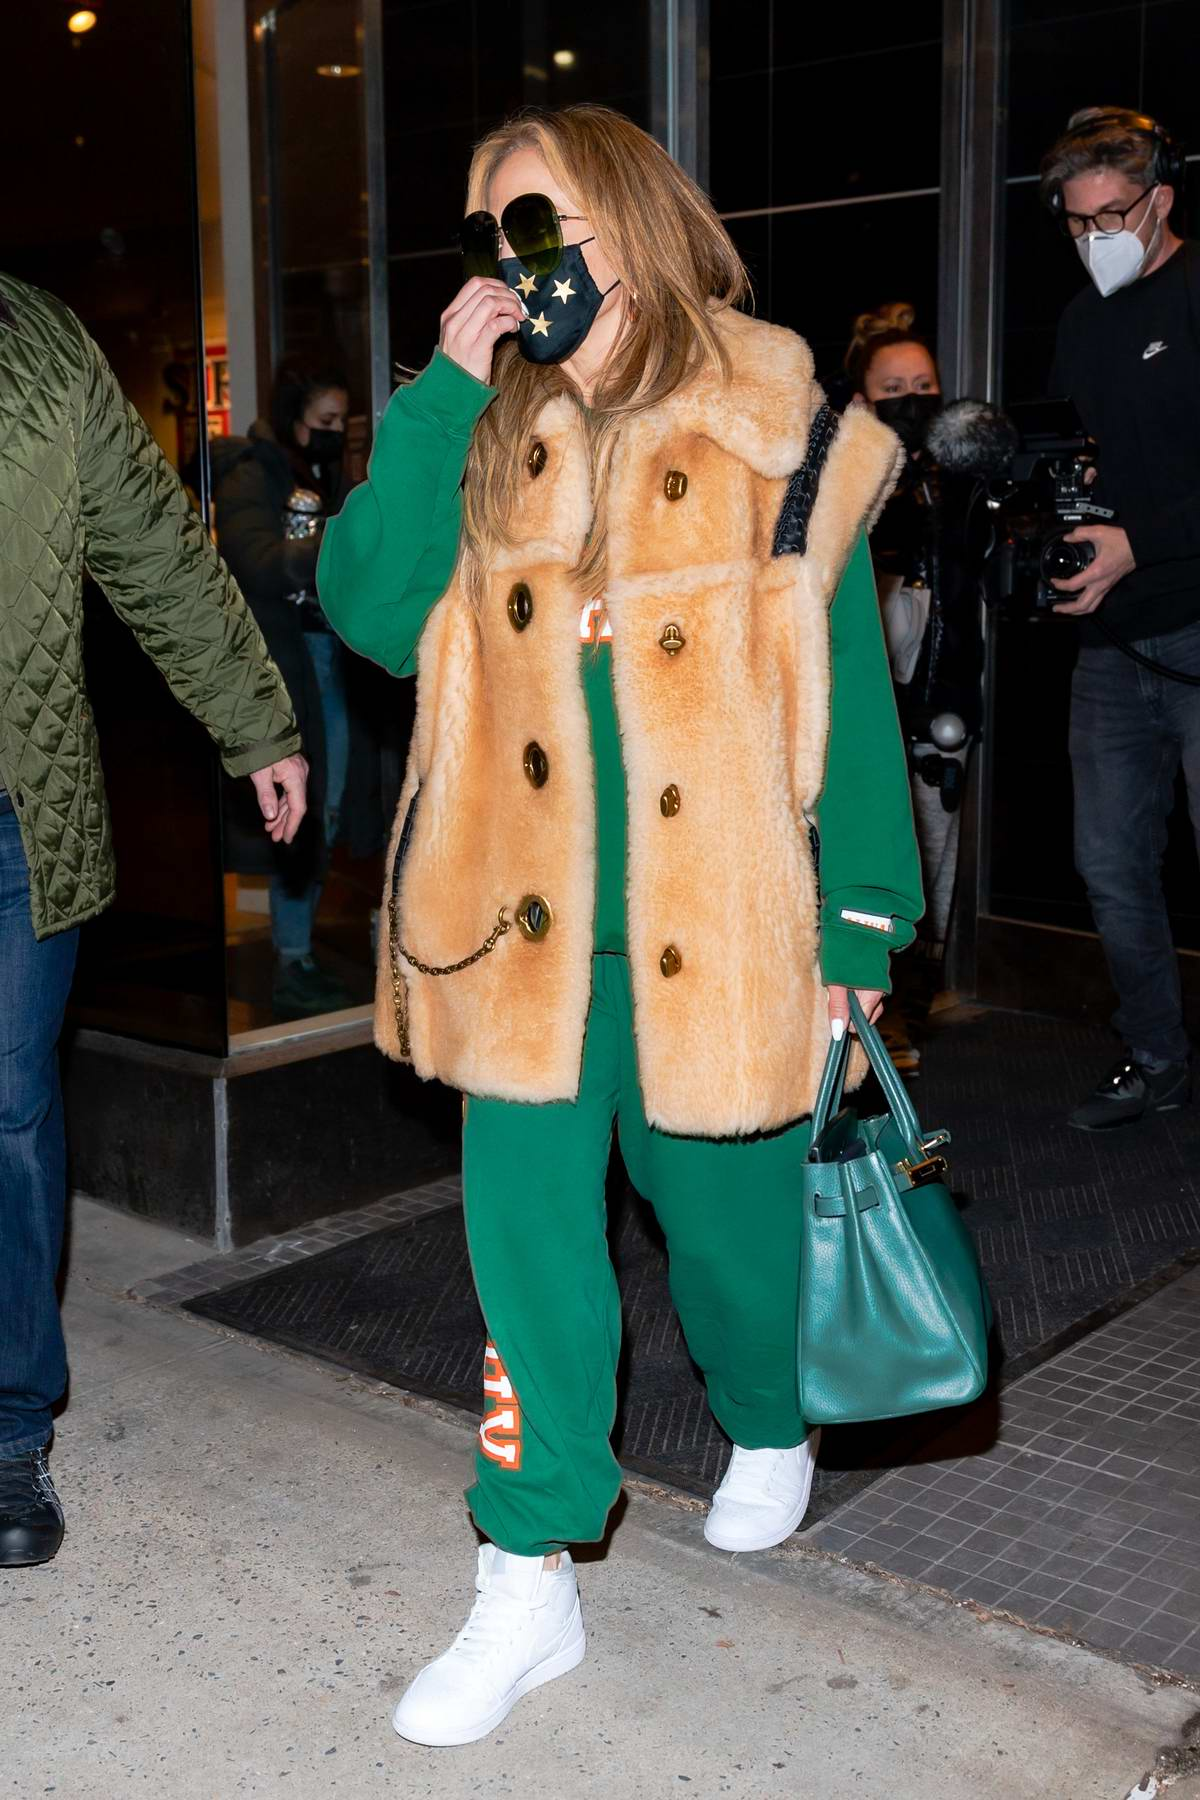 Jennifer Lopez wears a fur vest over her green sweatsuit as she heads out after rehearsals in New York City